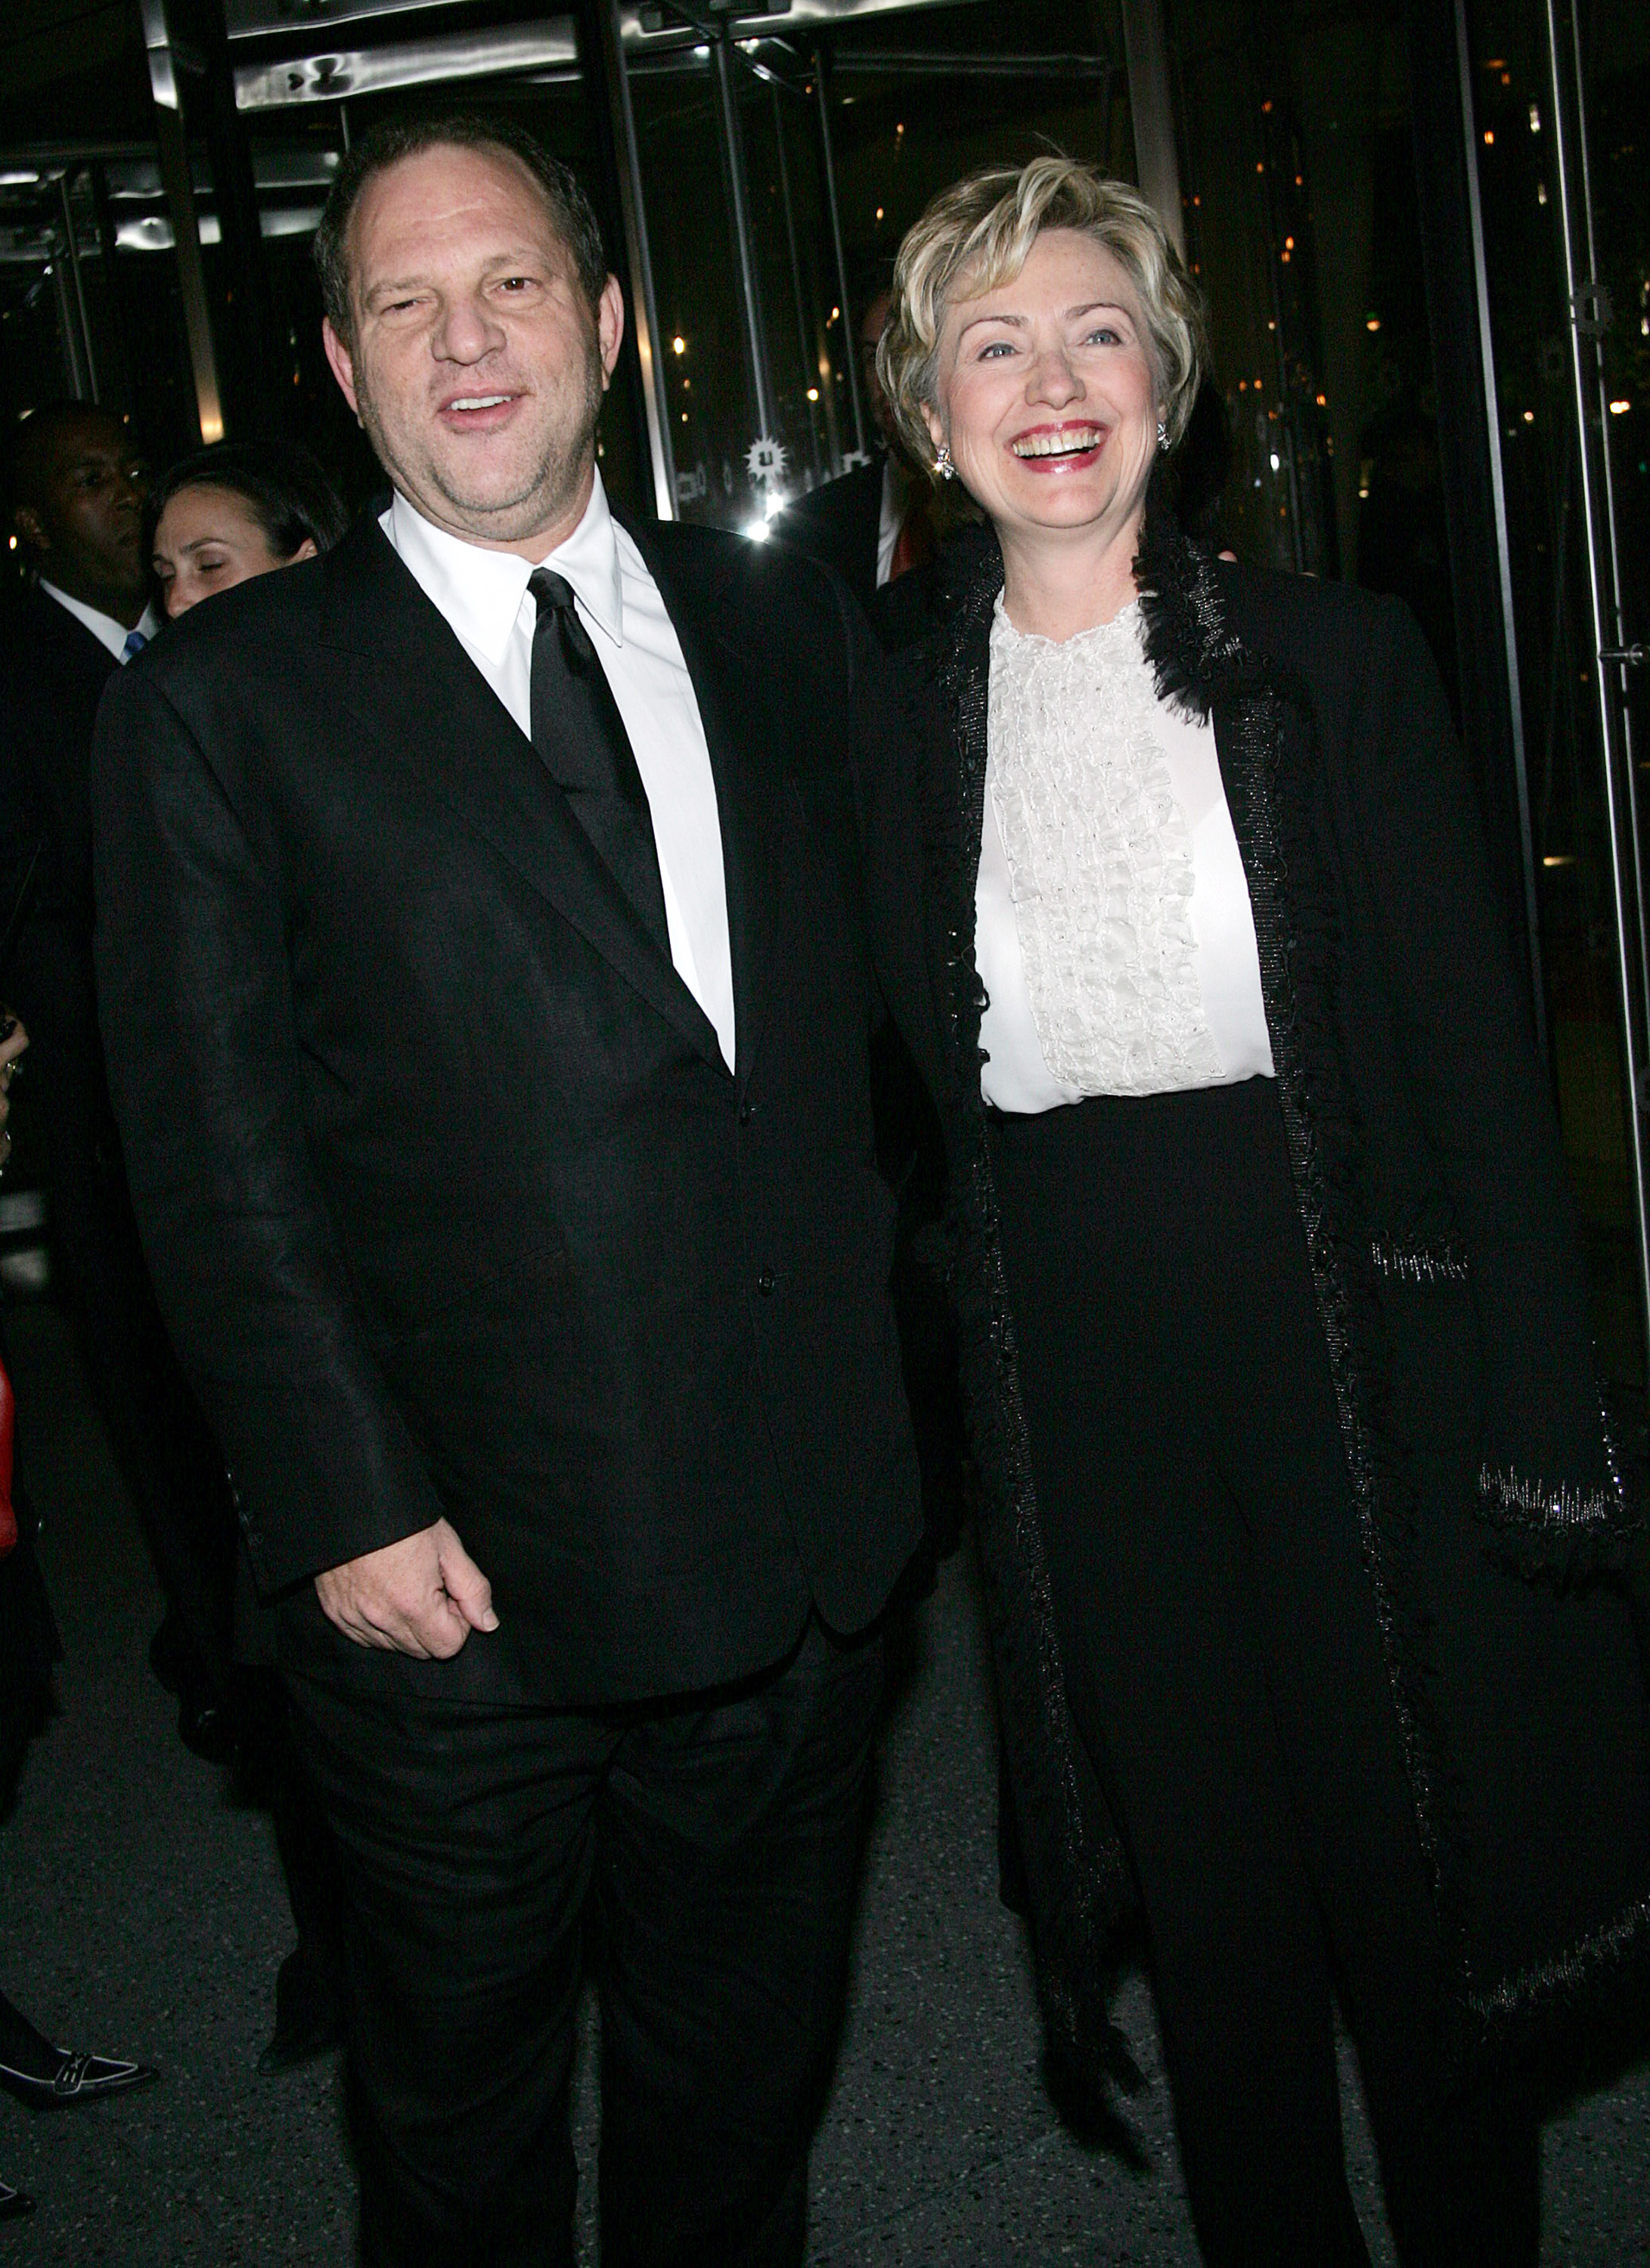 """NEW YORK - OCTOBER 25: Senator Hillary Clinton and Miramax boss Harvey Weinstein arrive at the Brooklyn Museum for the premiere of Miramax Films """"Finding Neverland"""" October 25, 2004 in New York City. (Photo by Evan Agostini/Getty Images)"""